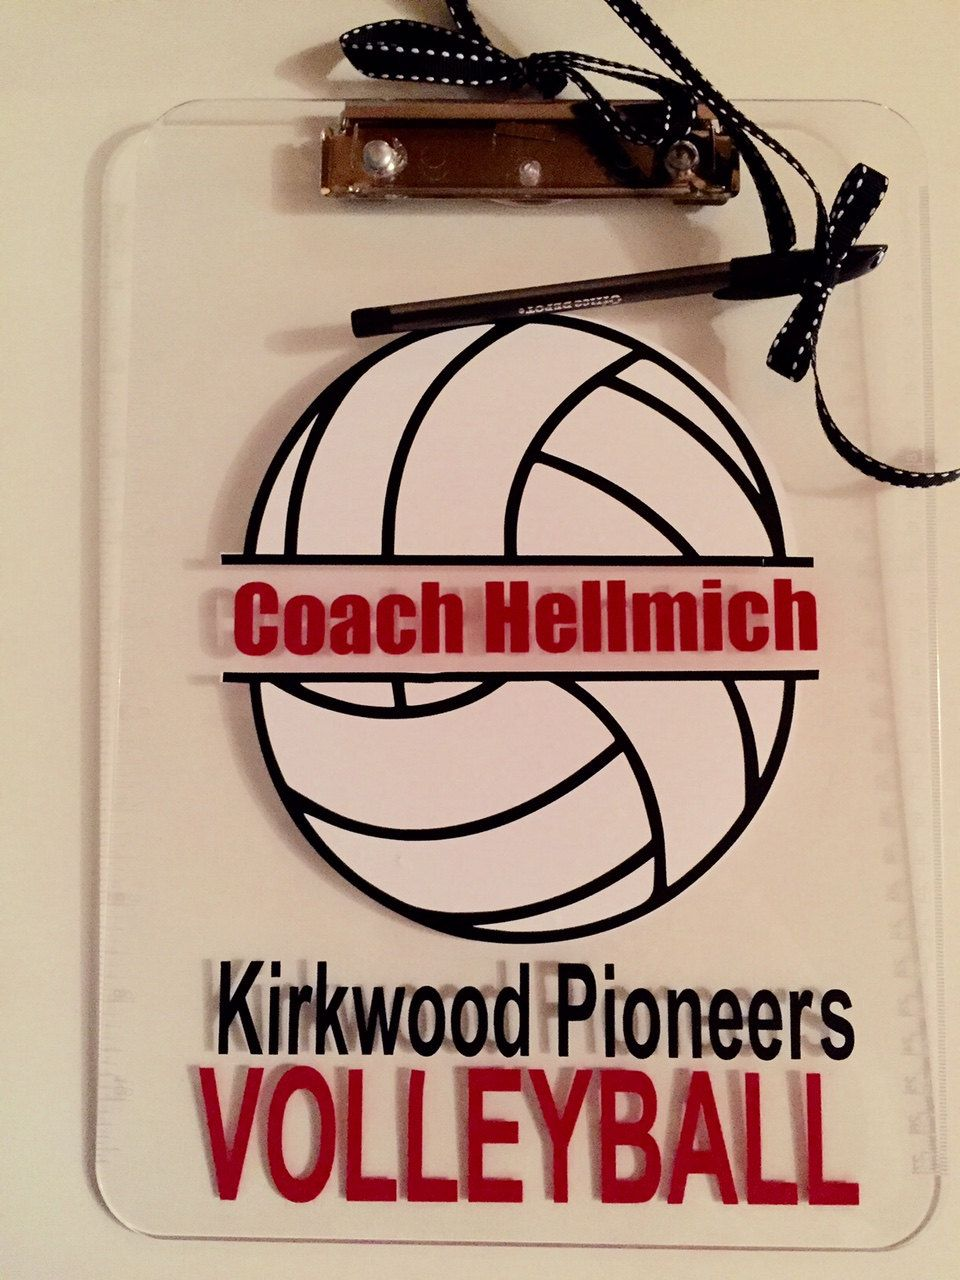 Volleyball Coach Gift Personalized Volleyball Clipboard With Name Volleyball Player Team Gift Idea Custom Clear Or Storage Clipboard Case Coaching Volleyball Coach Gifts Volleyball Gifts